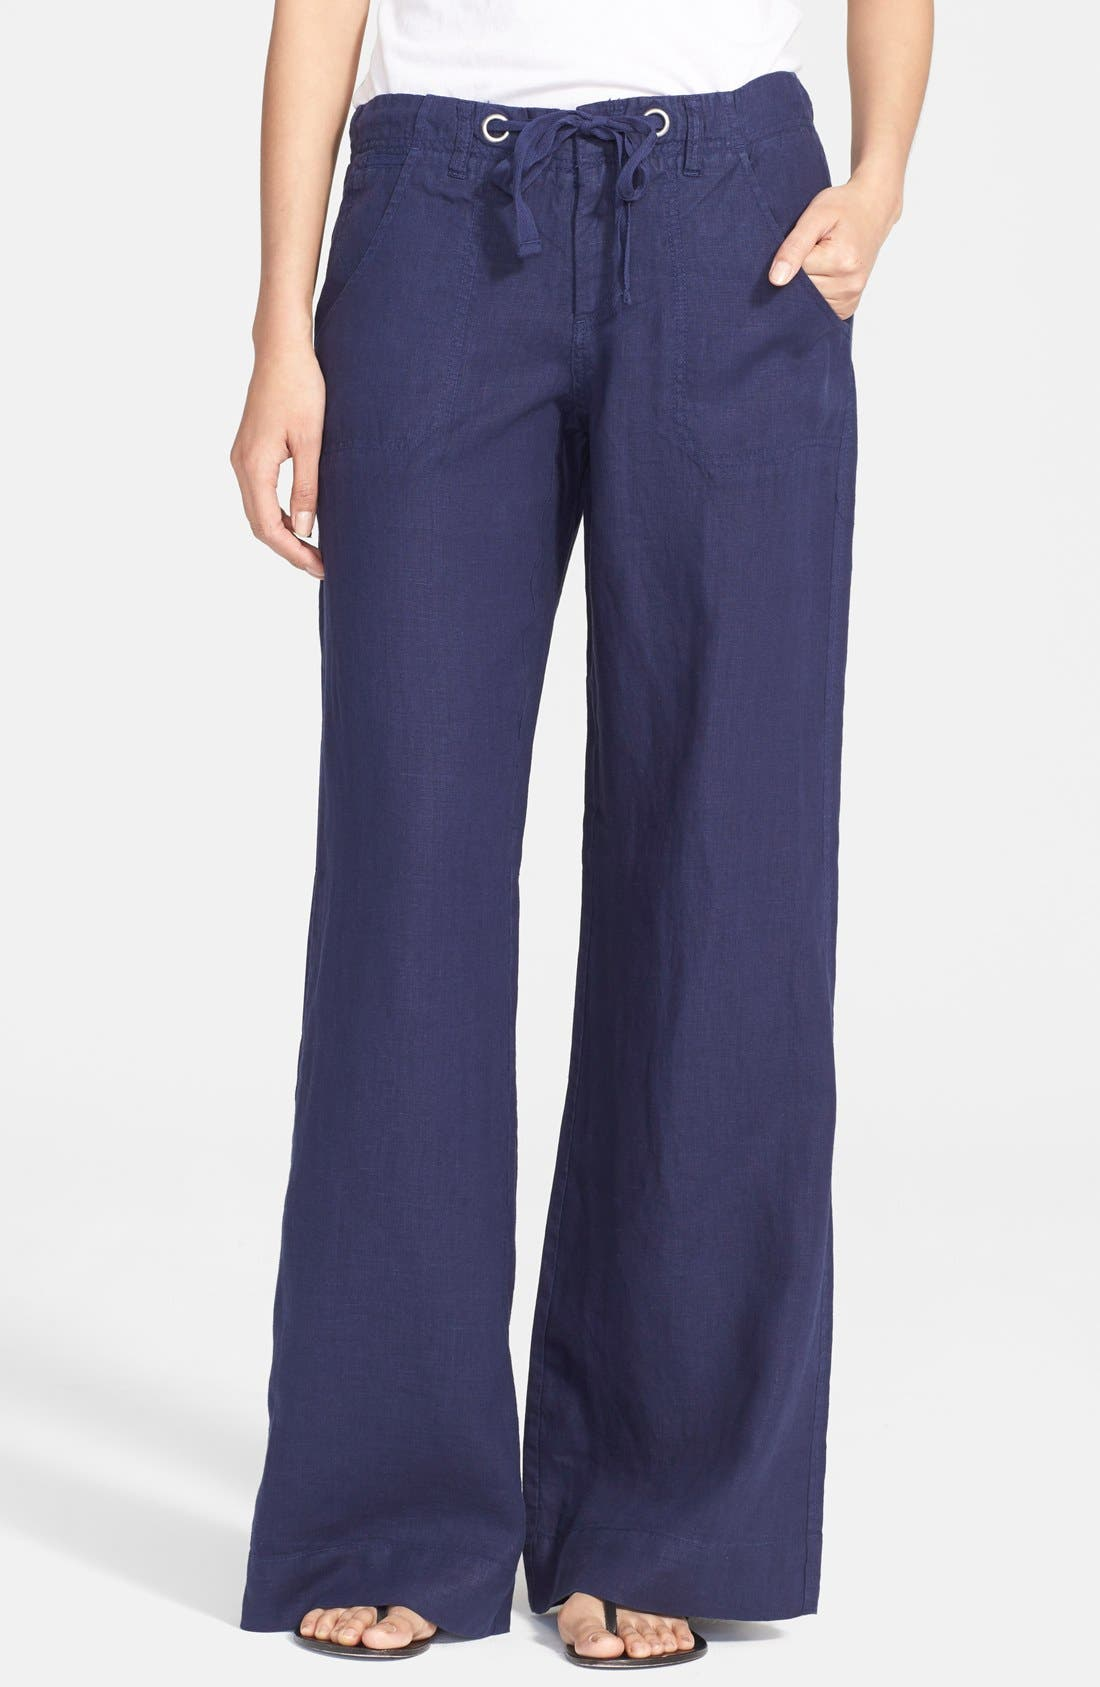 Alternate Image 1 Selected - Joie Wide Leg Linen Pants